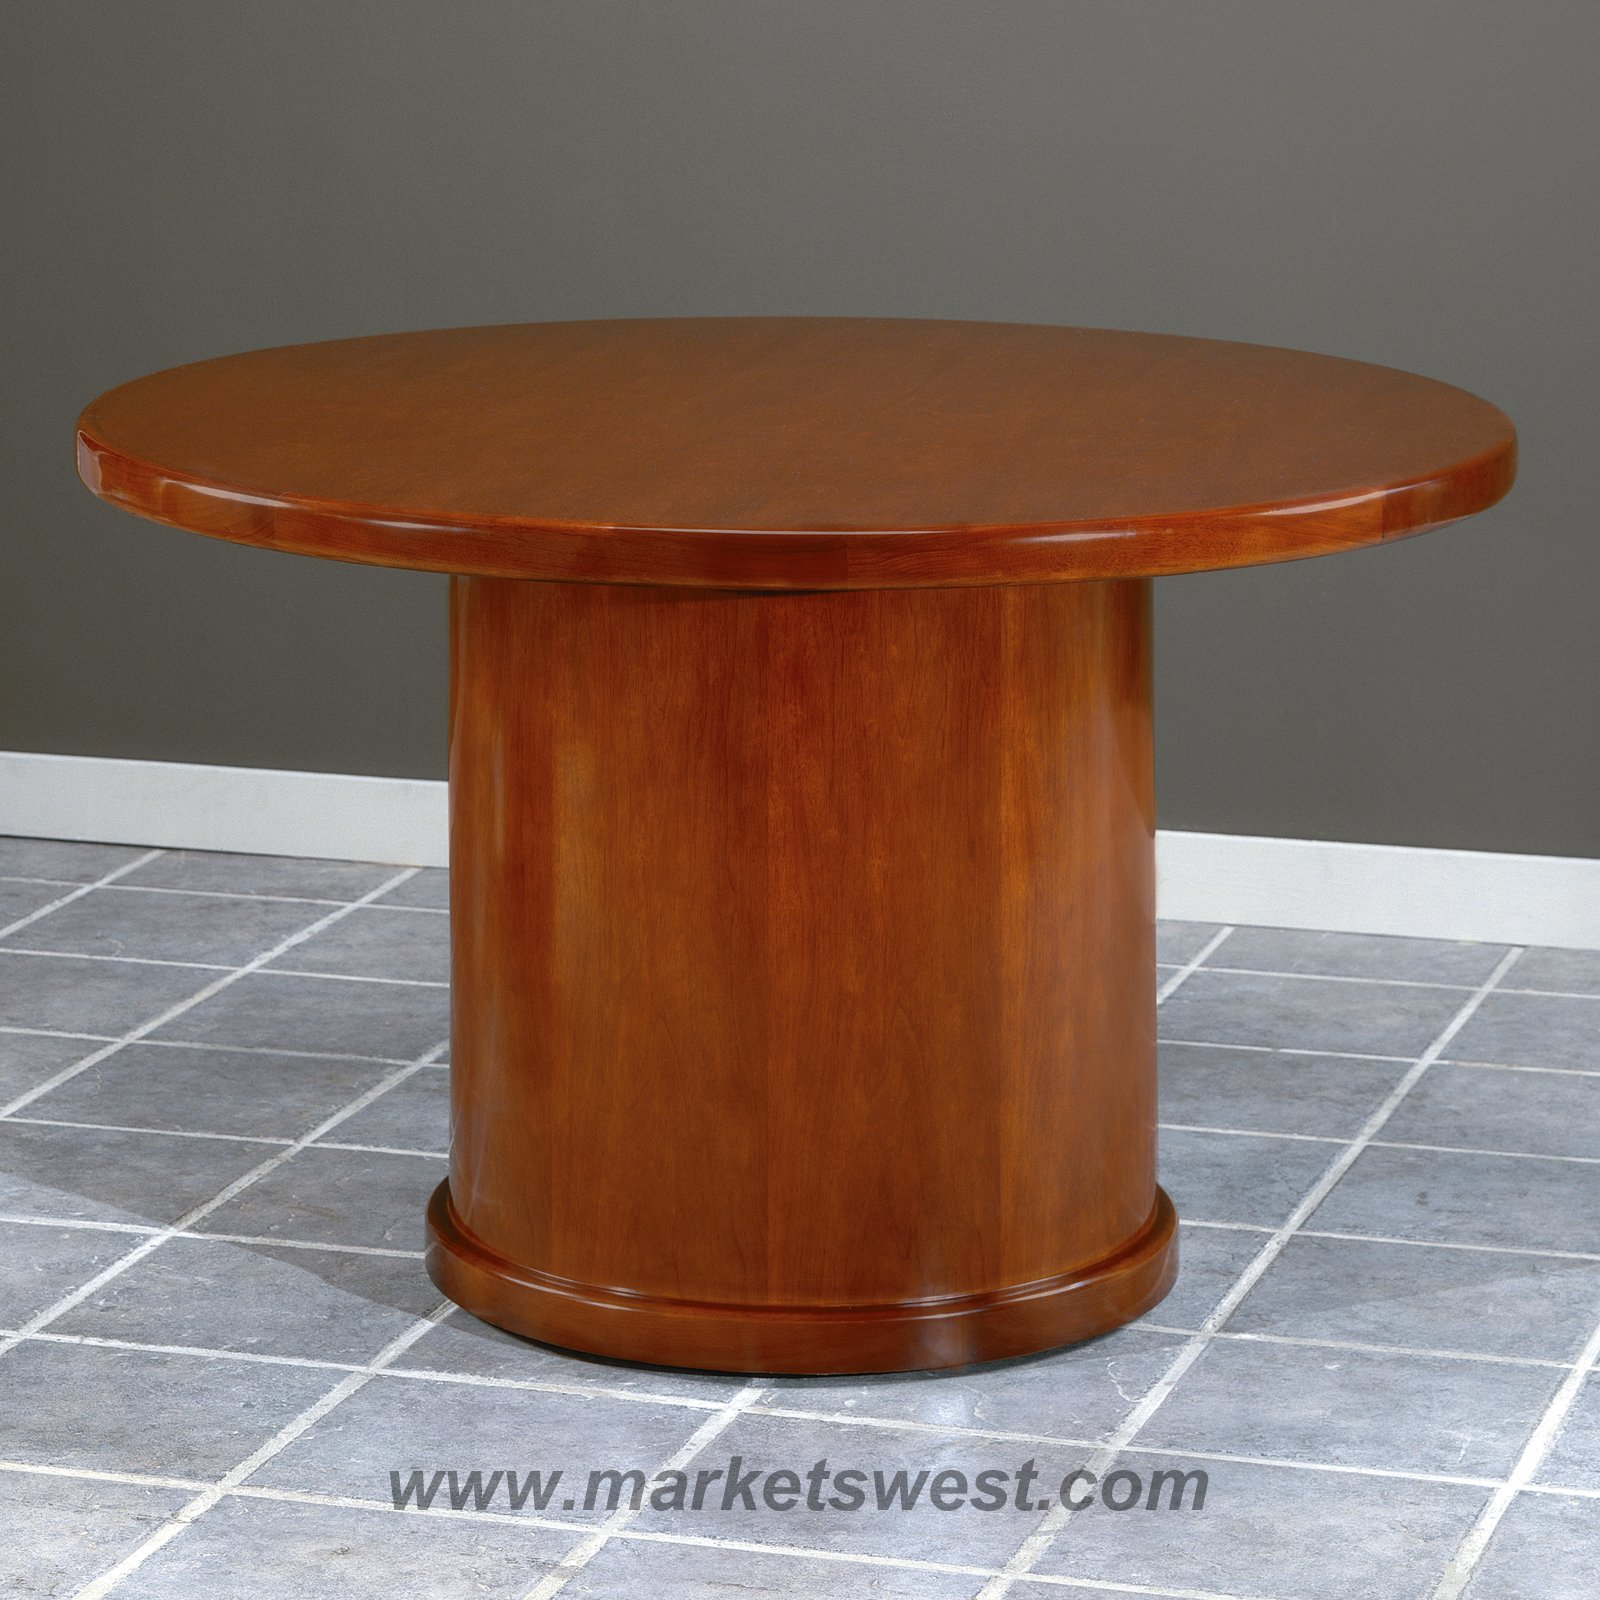 Inch Round Conference Table Dark Cherry Wood - 42 inch round conference table